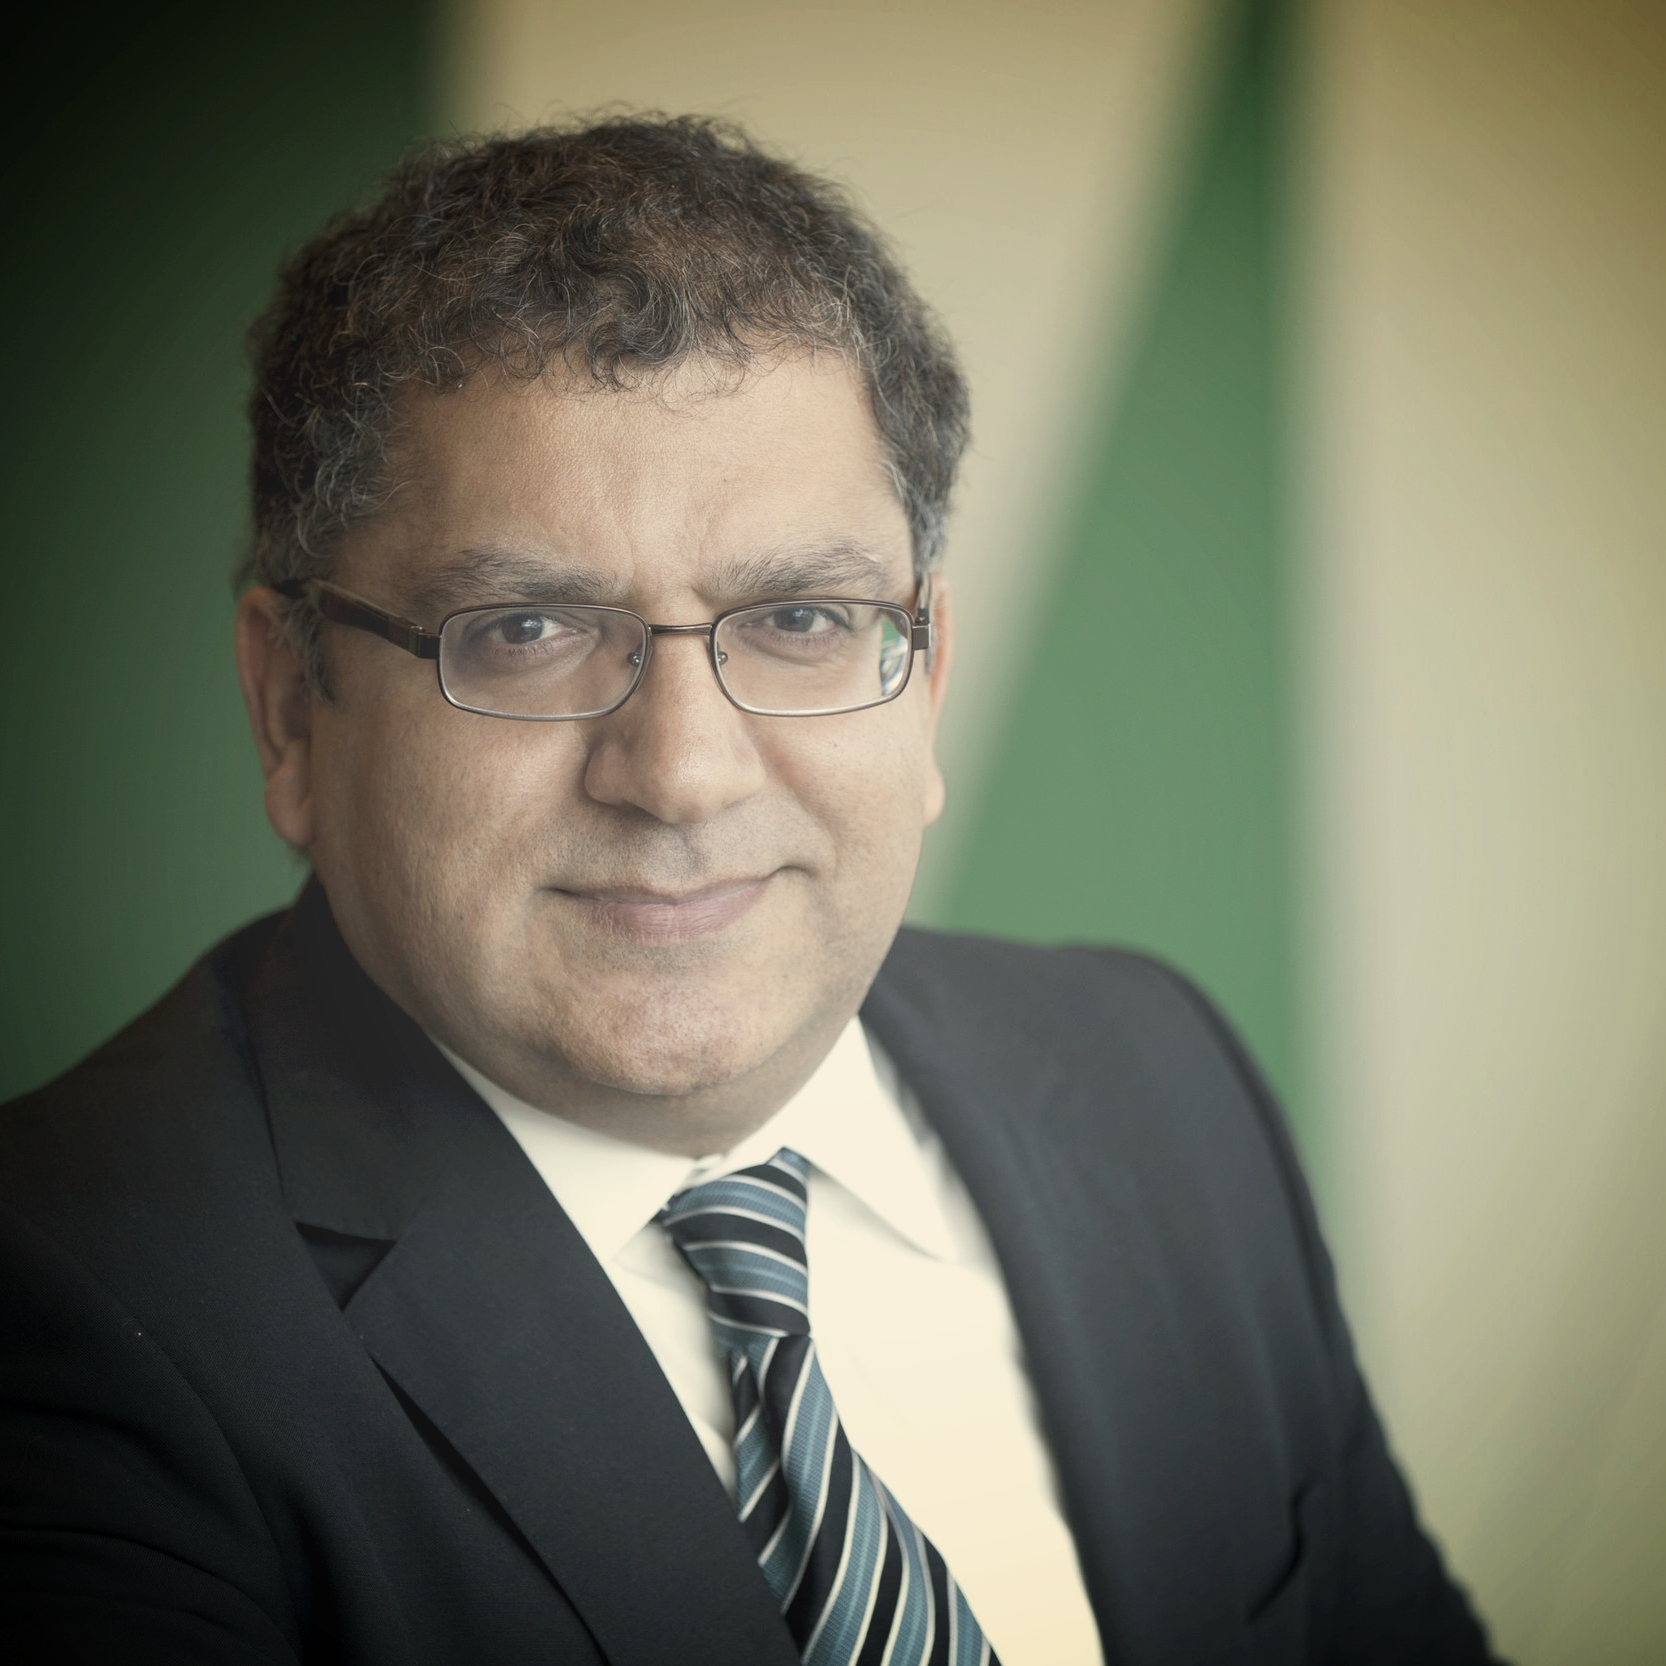 Ebrahim Mohamed  Director, Infintra360 Ltd. Former Director of Education, Climate-KIC, European Institute of Innovation and Technology